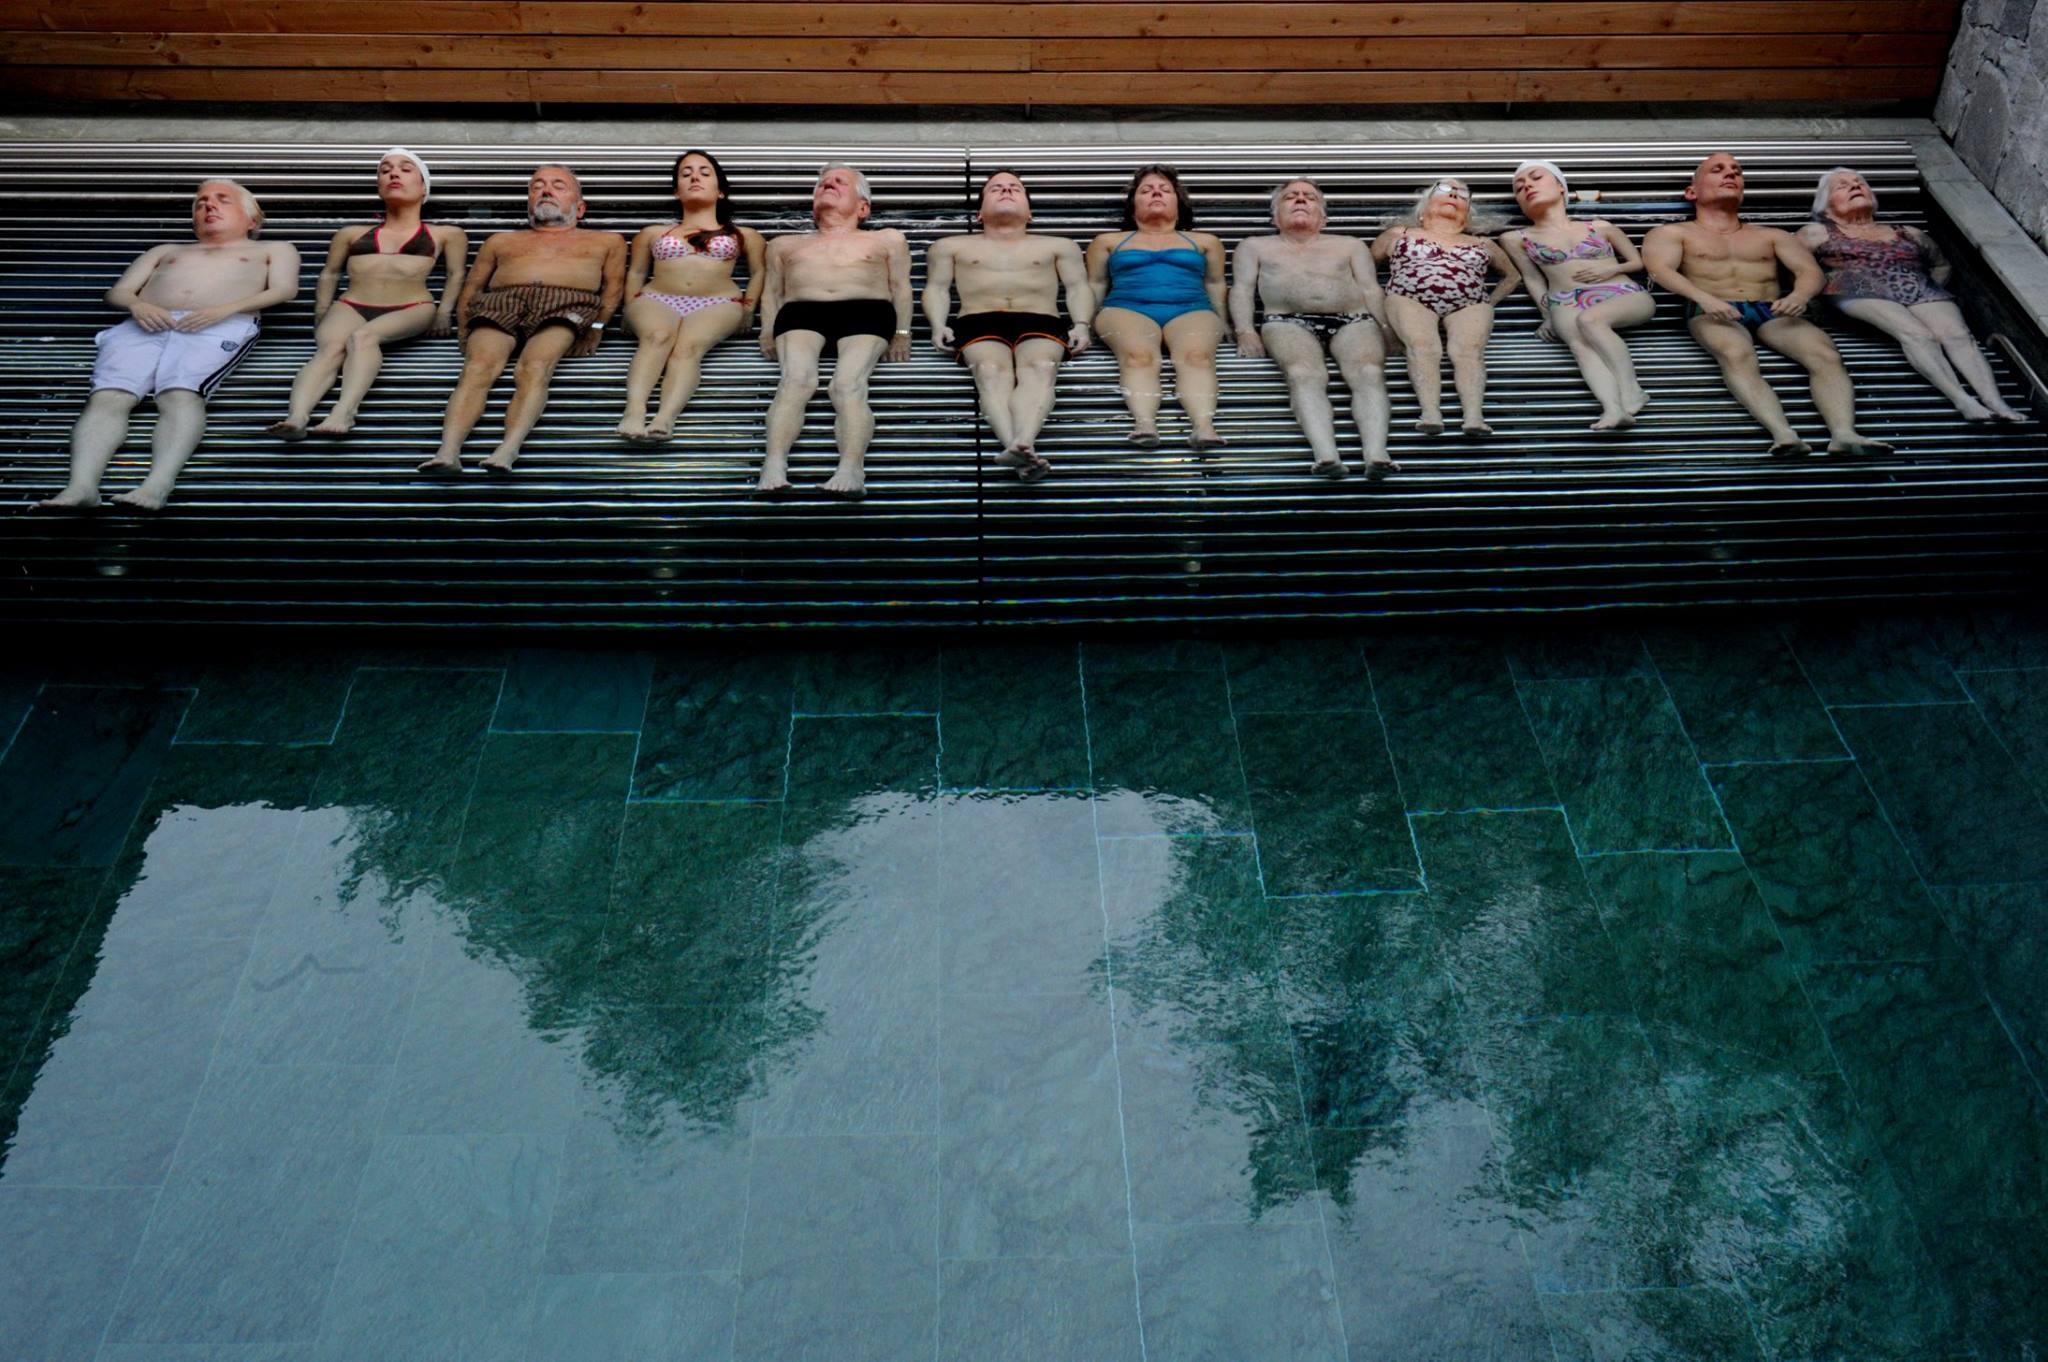 Youth trailer (Paolo Sorrentino)